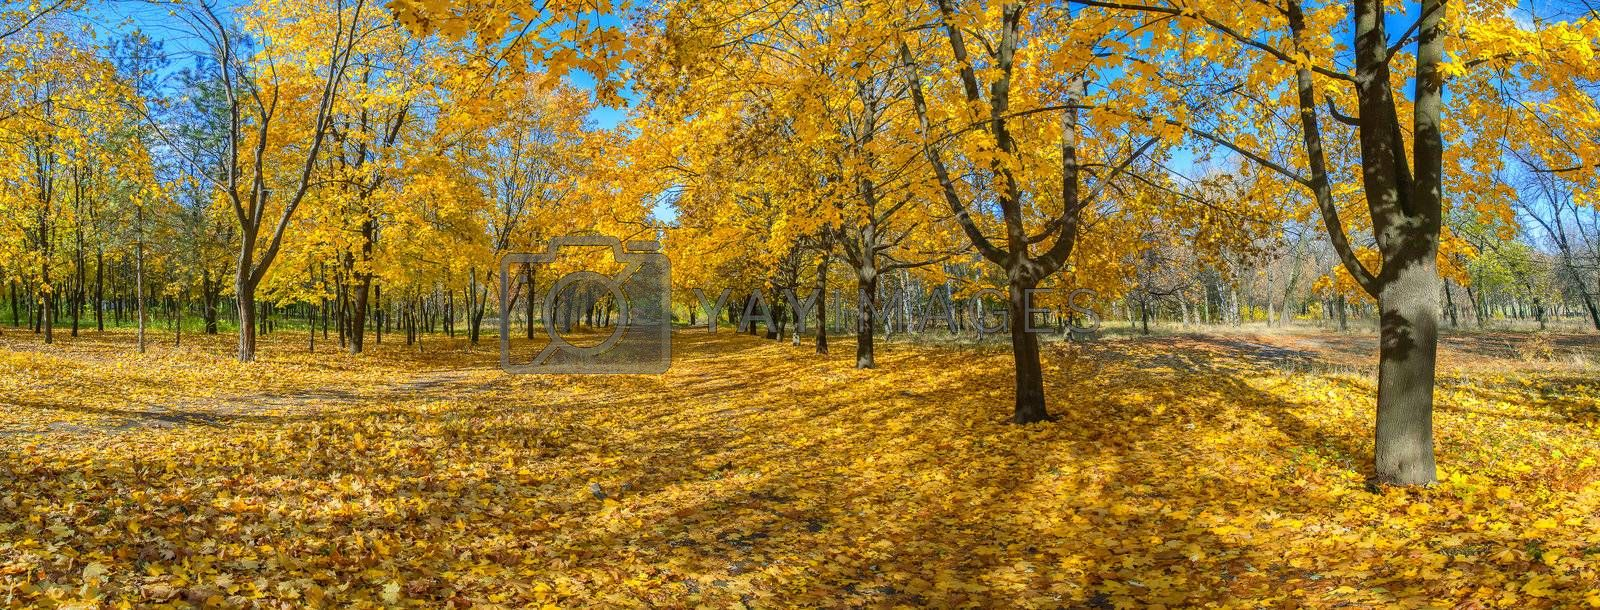 Panorama of the big maple alleys strewn with yellow leaves, autumn landscape